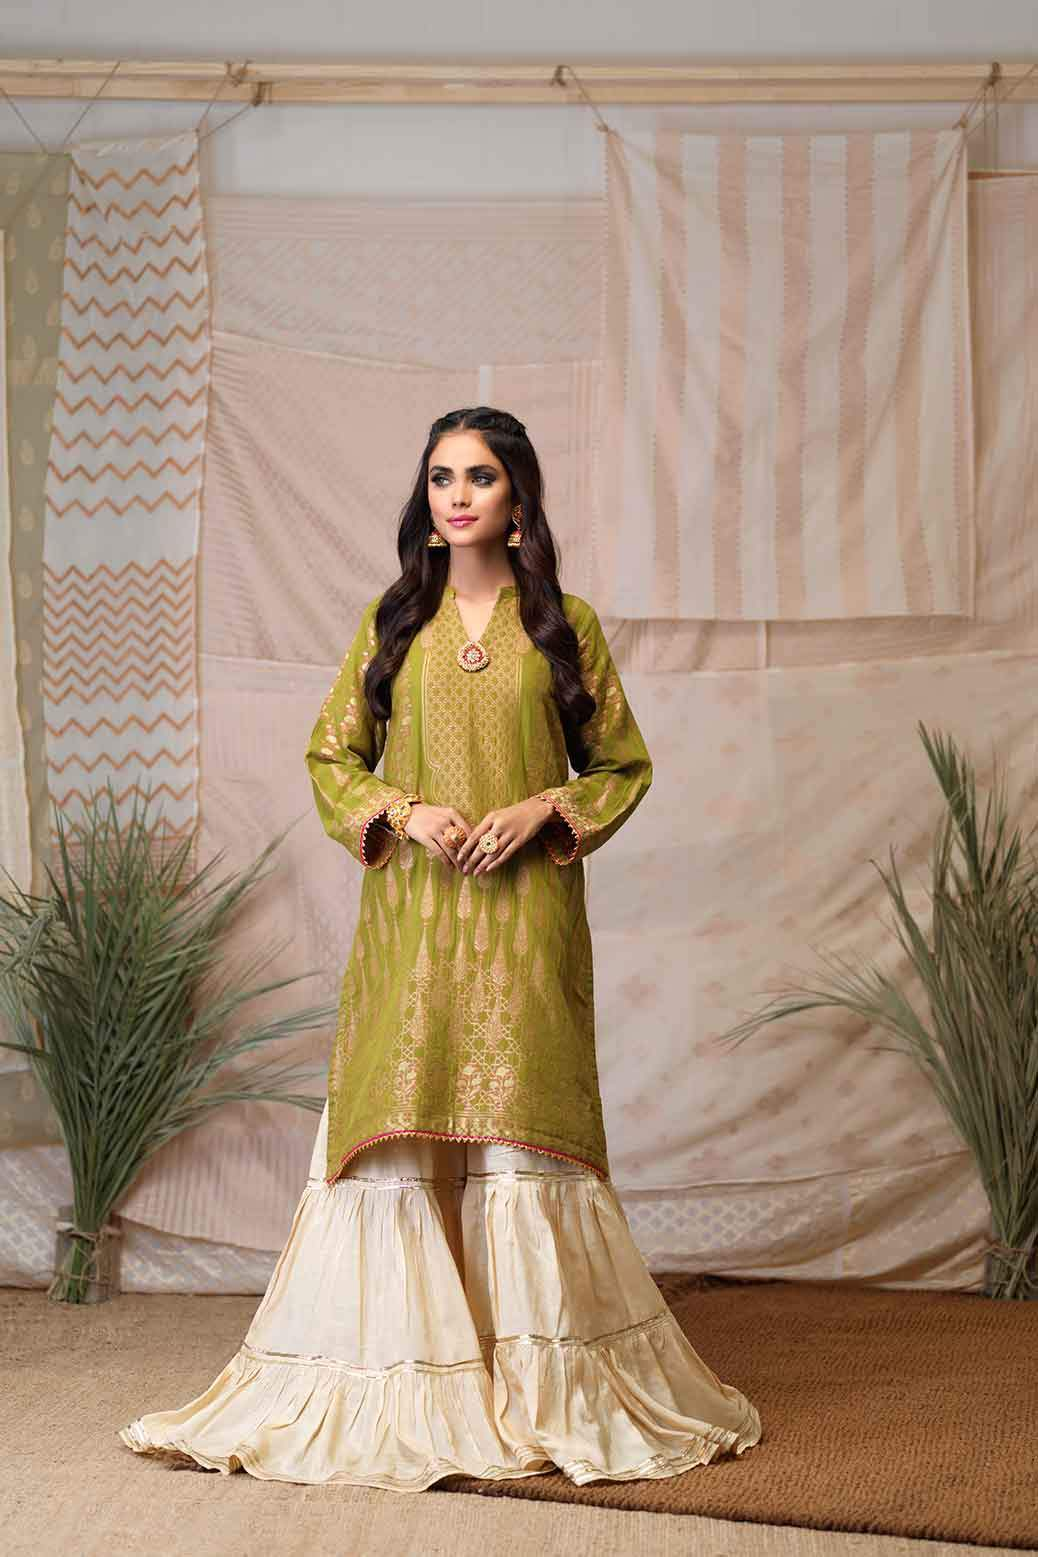 Bonanza Satrangi - Golden Jacquard Kurti - 1 PC